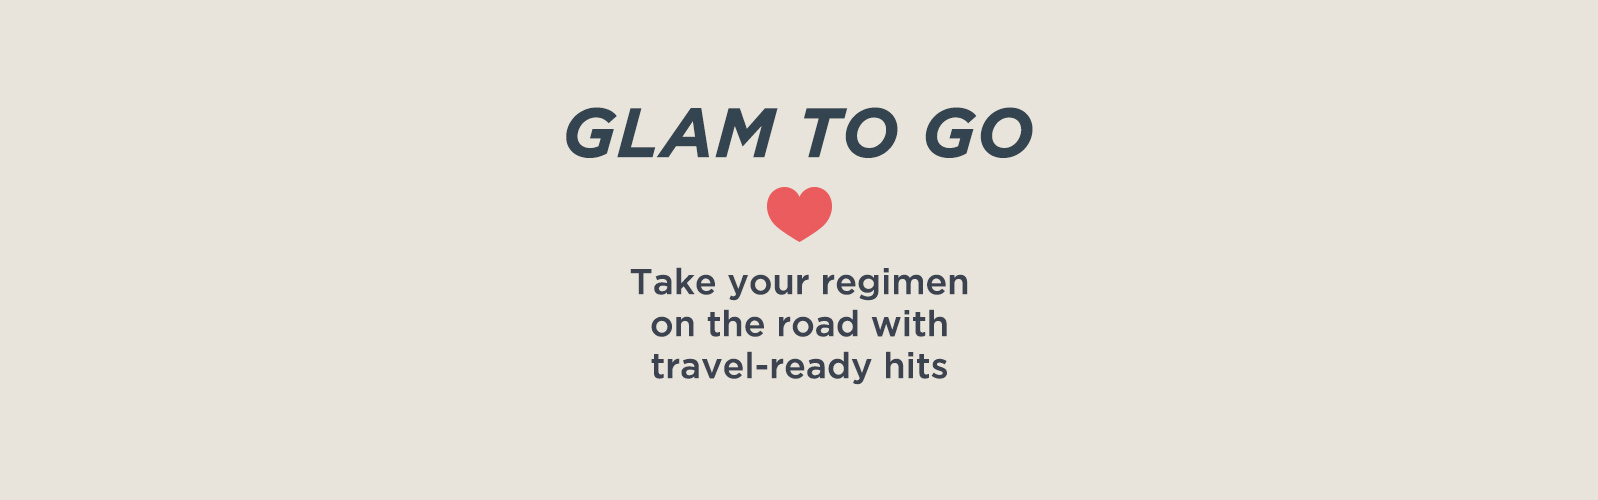 Glam to Go  Take your regimen on the road with travel-ready hits.